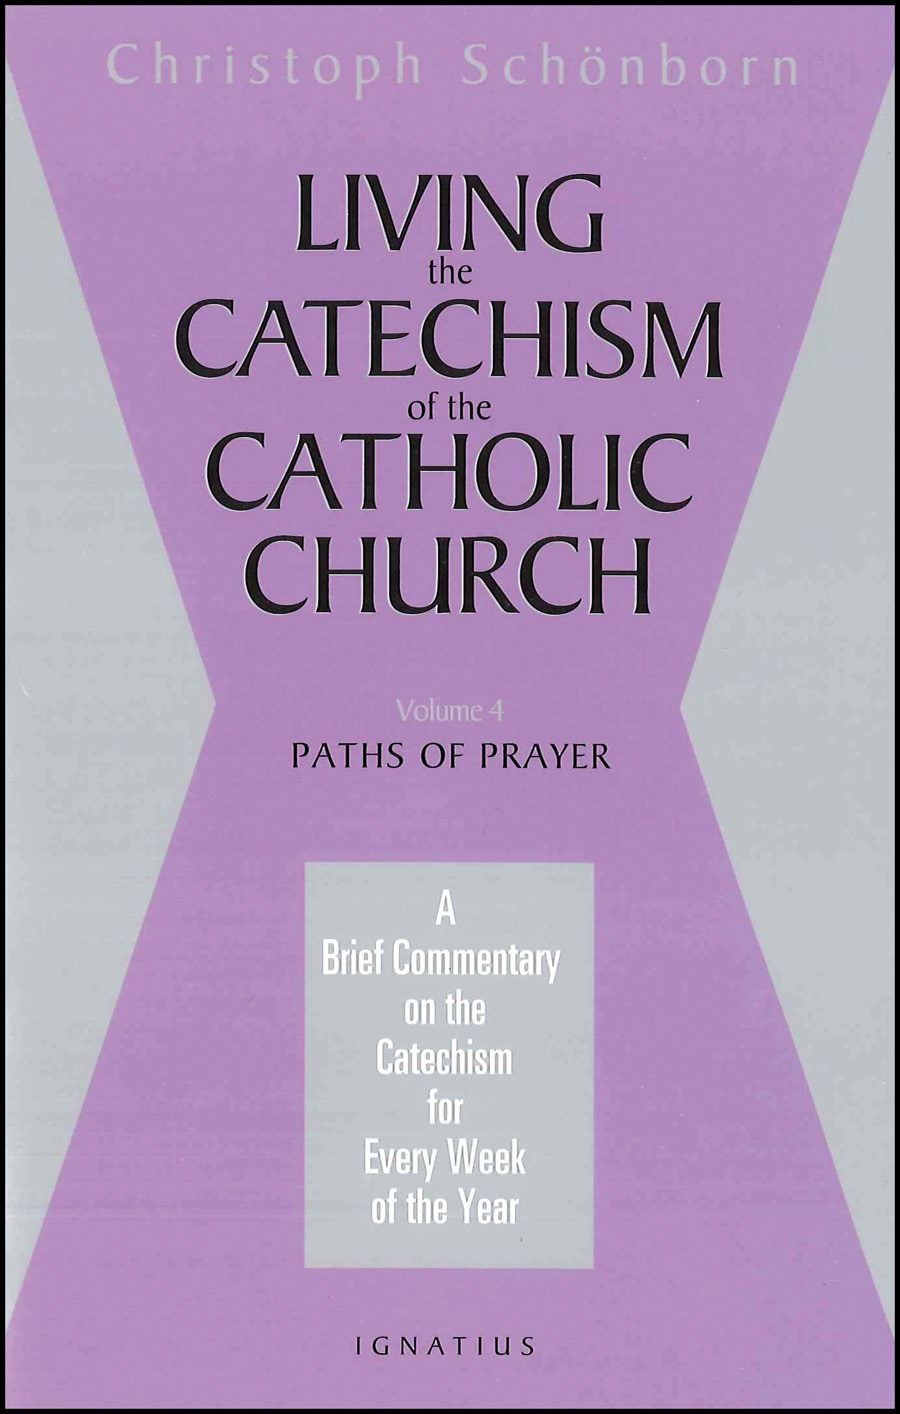 Living the Catechism of the Catholic Church Vol 4